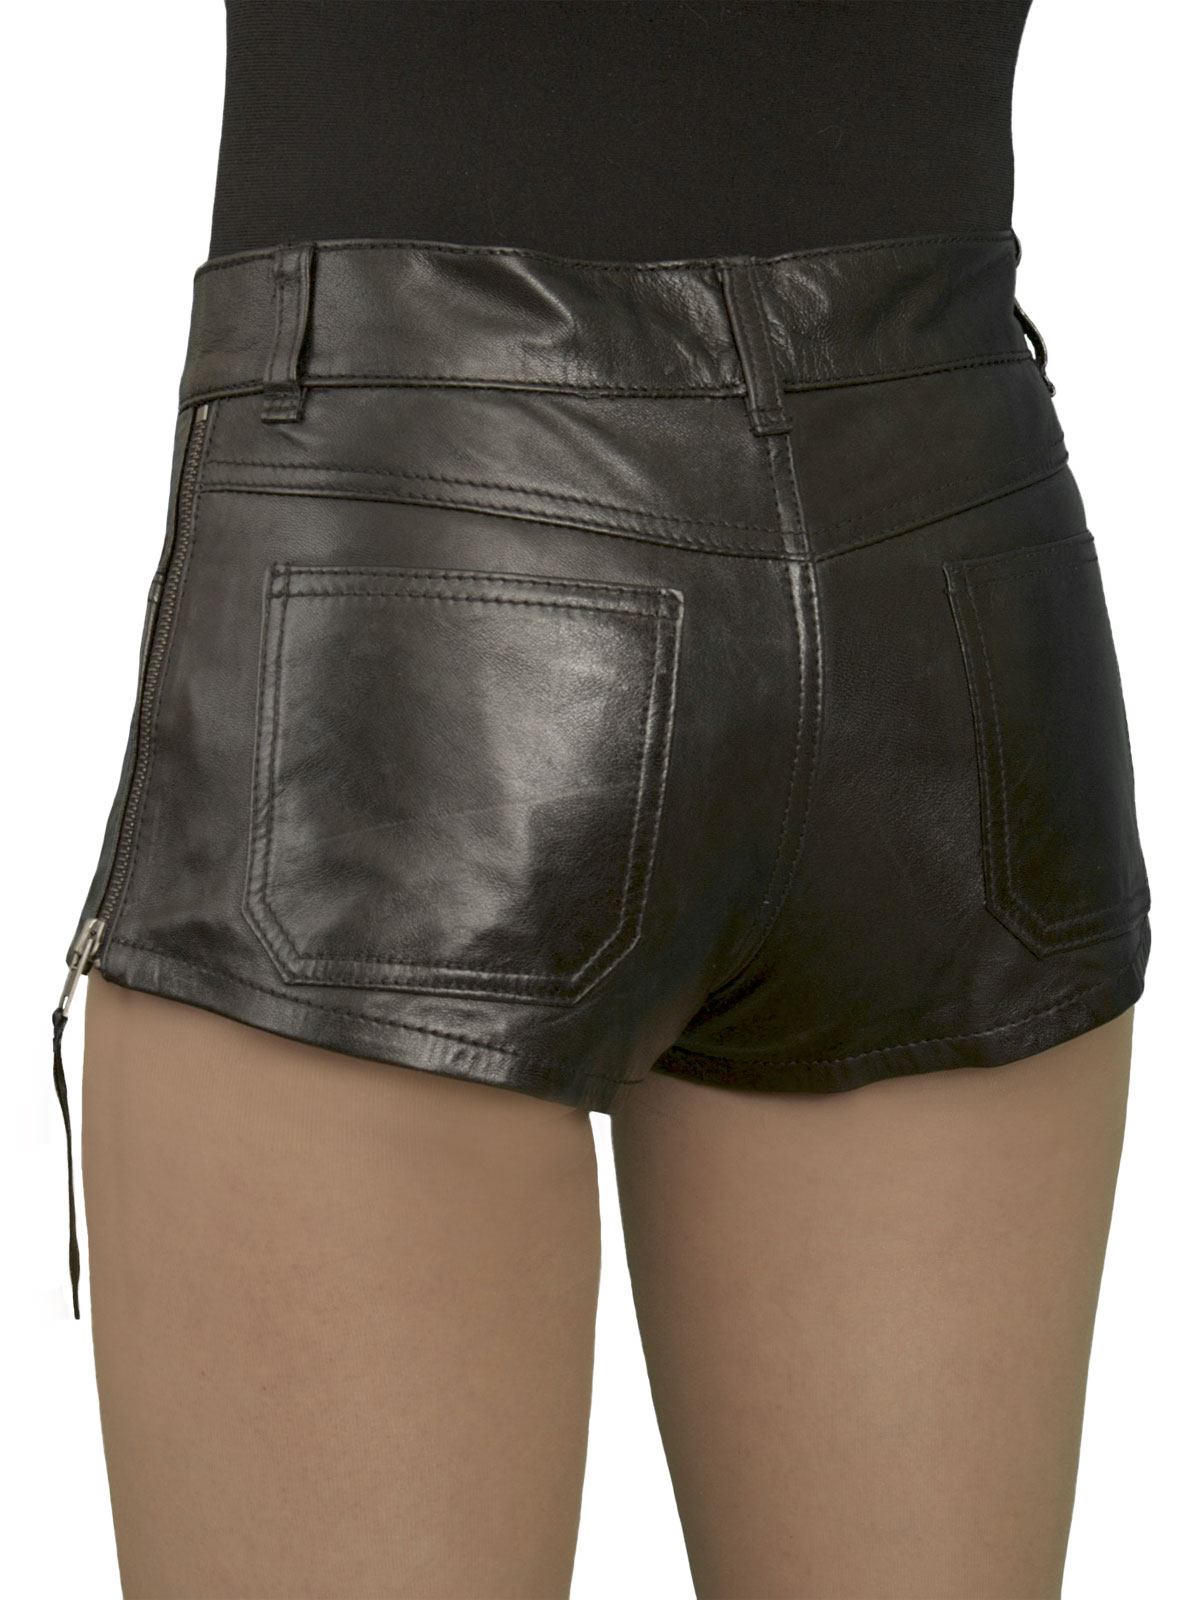 Womens Luxury Leather Hot Pants Shorts Jeans Style Tout